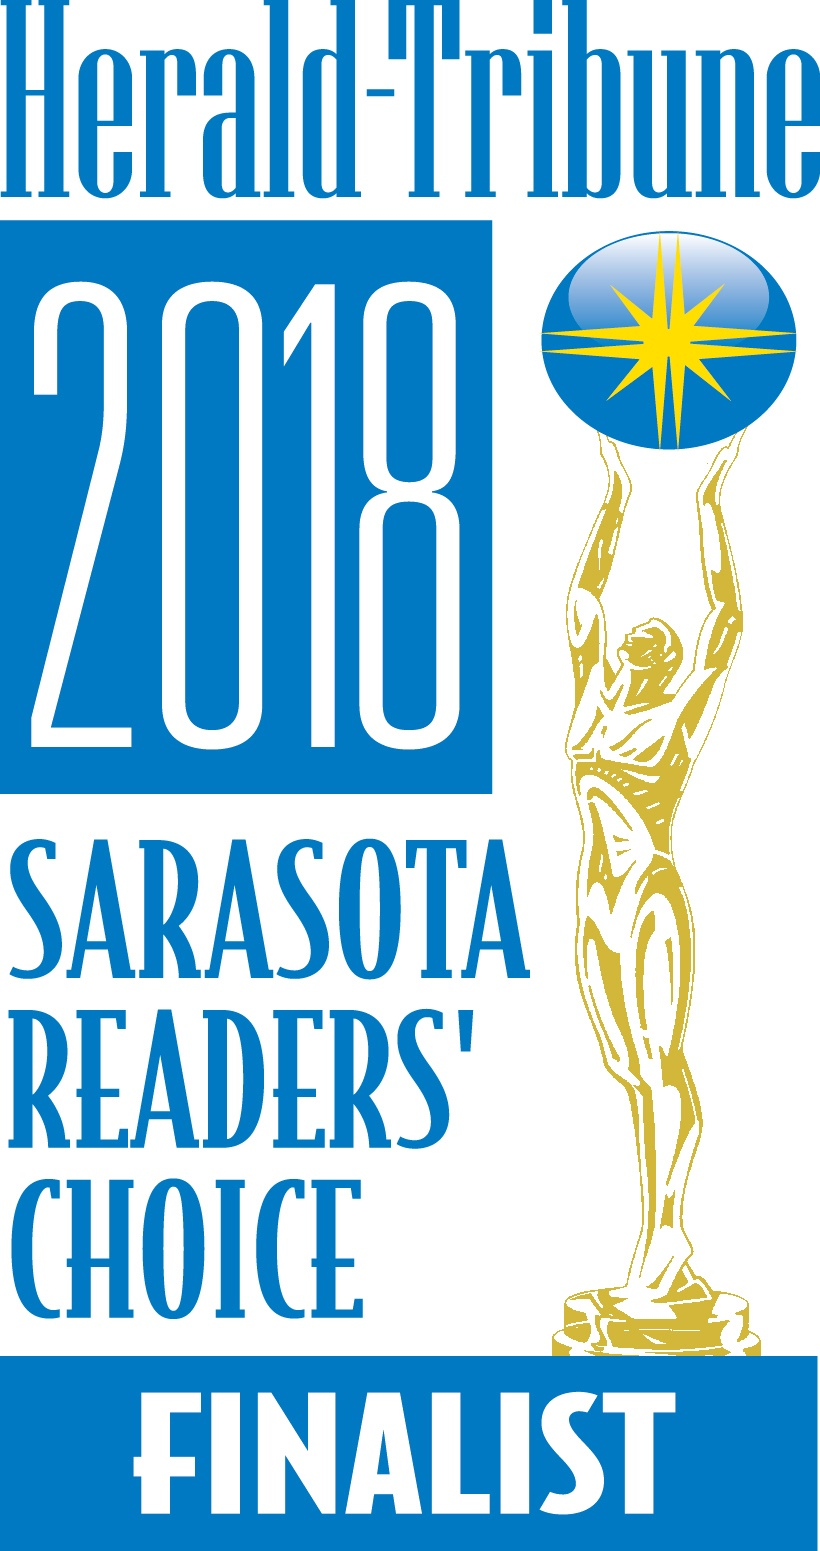 Sarasota Readers' Choice Finalist Award